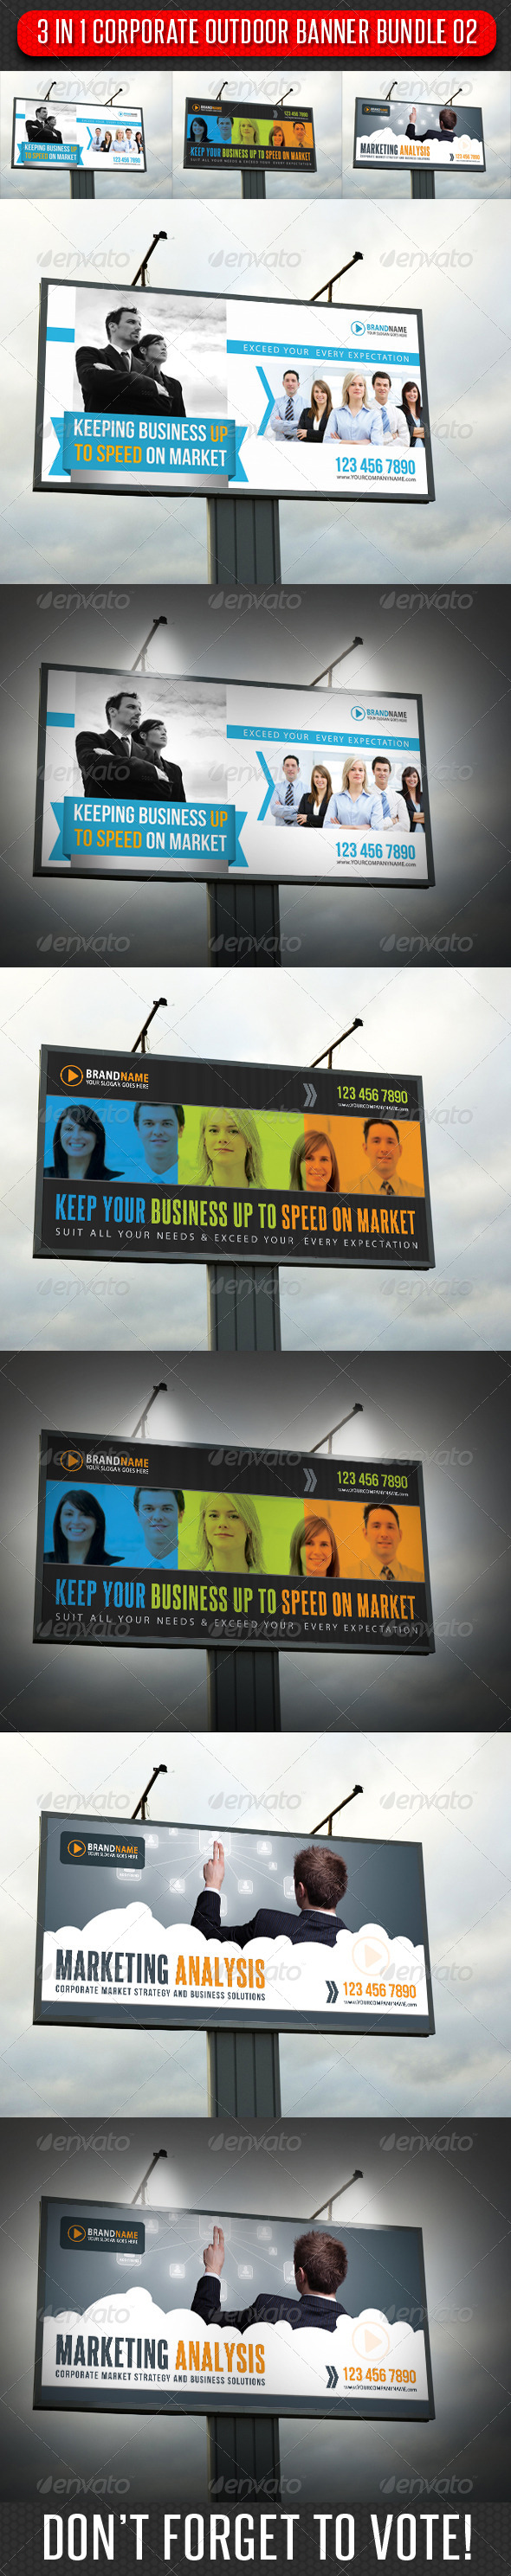 GraphicRiver 3 in 1 Corporate Outdoor Banner Bundle 02 6629348